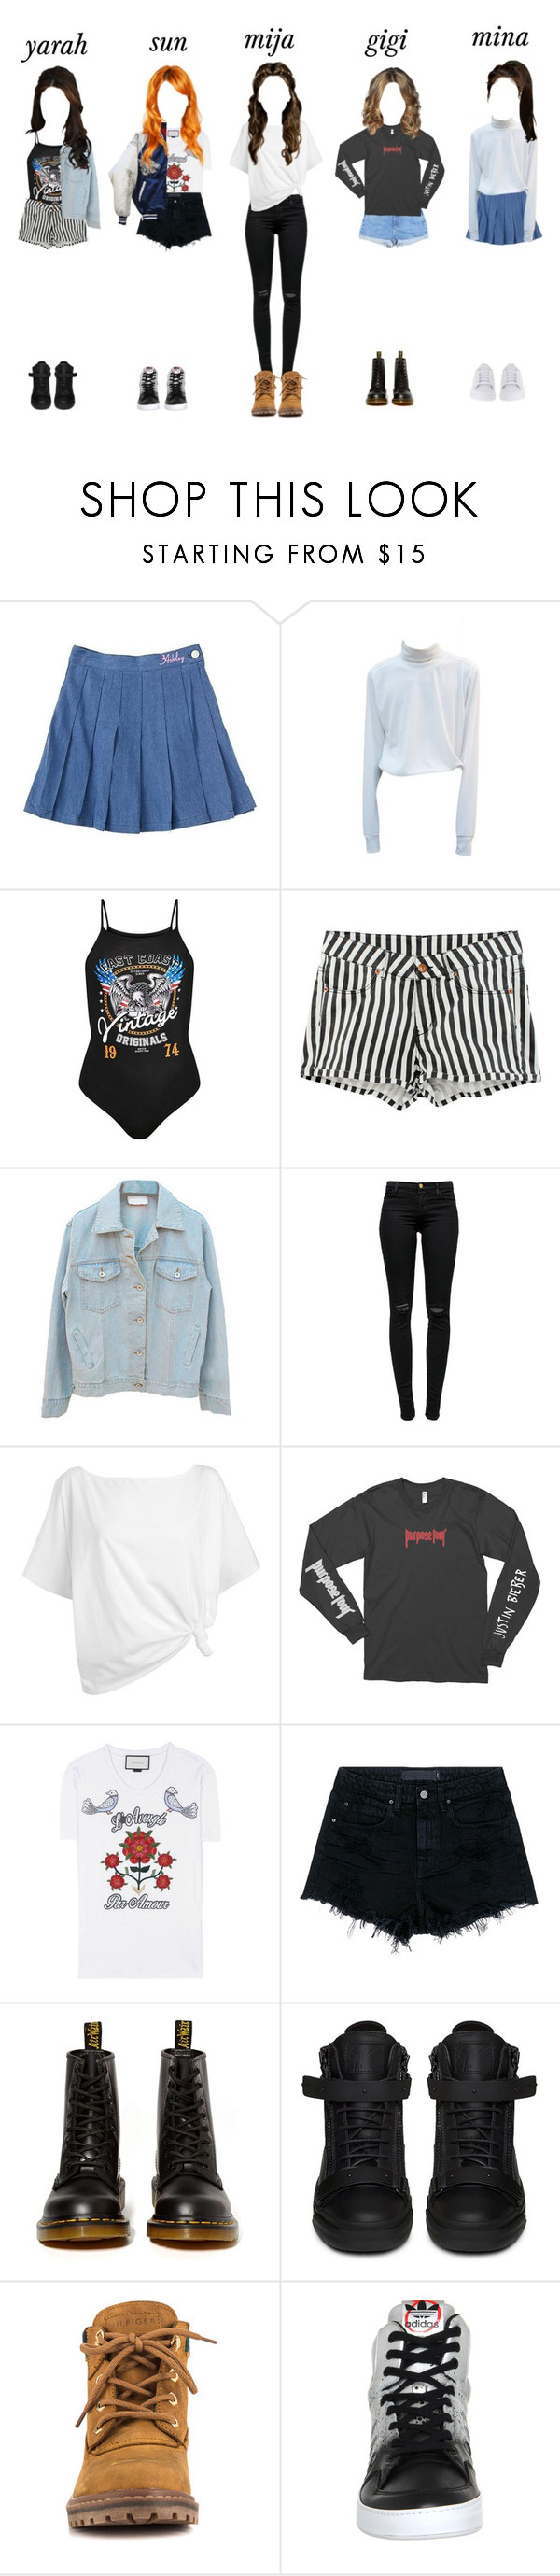 """""""ARIA // JYP Audition"""" by ariaofficial ❤ liked on Polyvore featuring H&M, J Brand, Red Herring, Justin Bieber, Gucci, Alexander Wang, Dr. Martens, Giuseppe Zanotti, Tommy Hilfiger and adidas"""